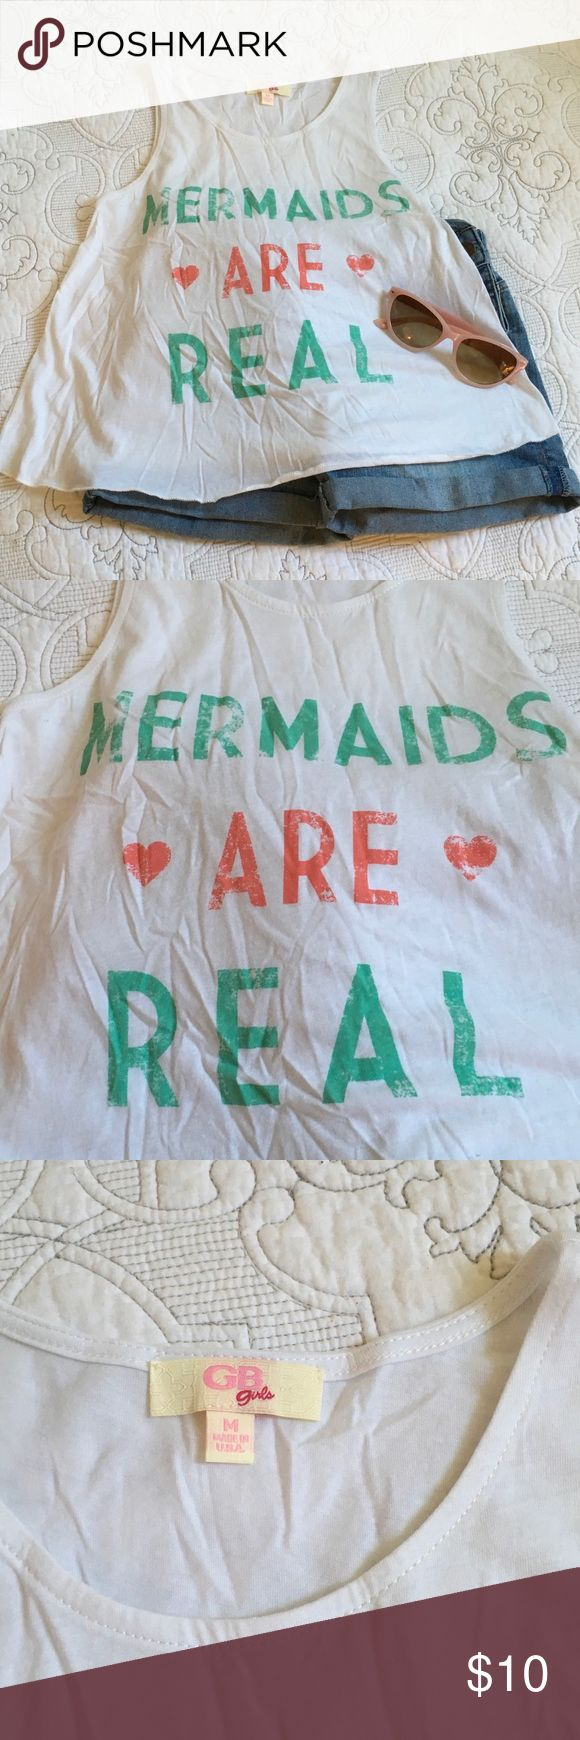 "Girls ""MERMAIDS ARE REAL"" tank I have always wanted to be a mermaid 😊. Cute, soft like new tank. Size M (8-10), ready for summer yet?🌞 GB girls Shirts & Tops"